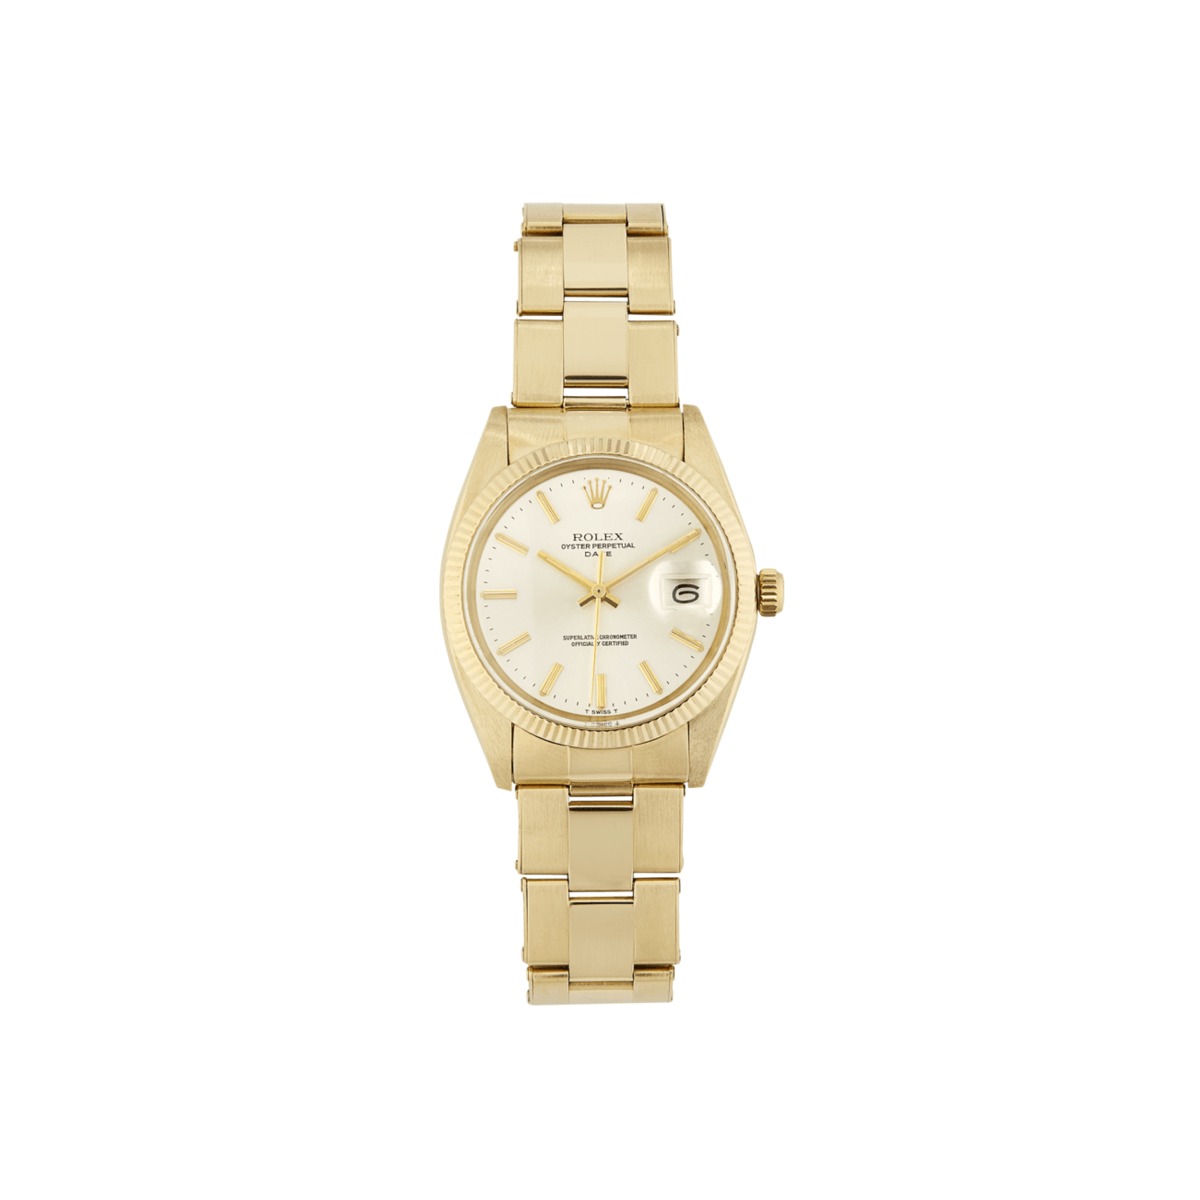 Bob's Watches Rolex Men's Date 14ct Yellow gold 34mm Model 1503